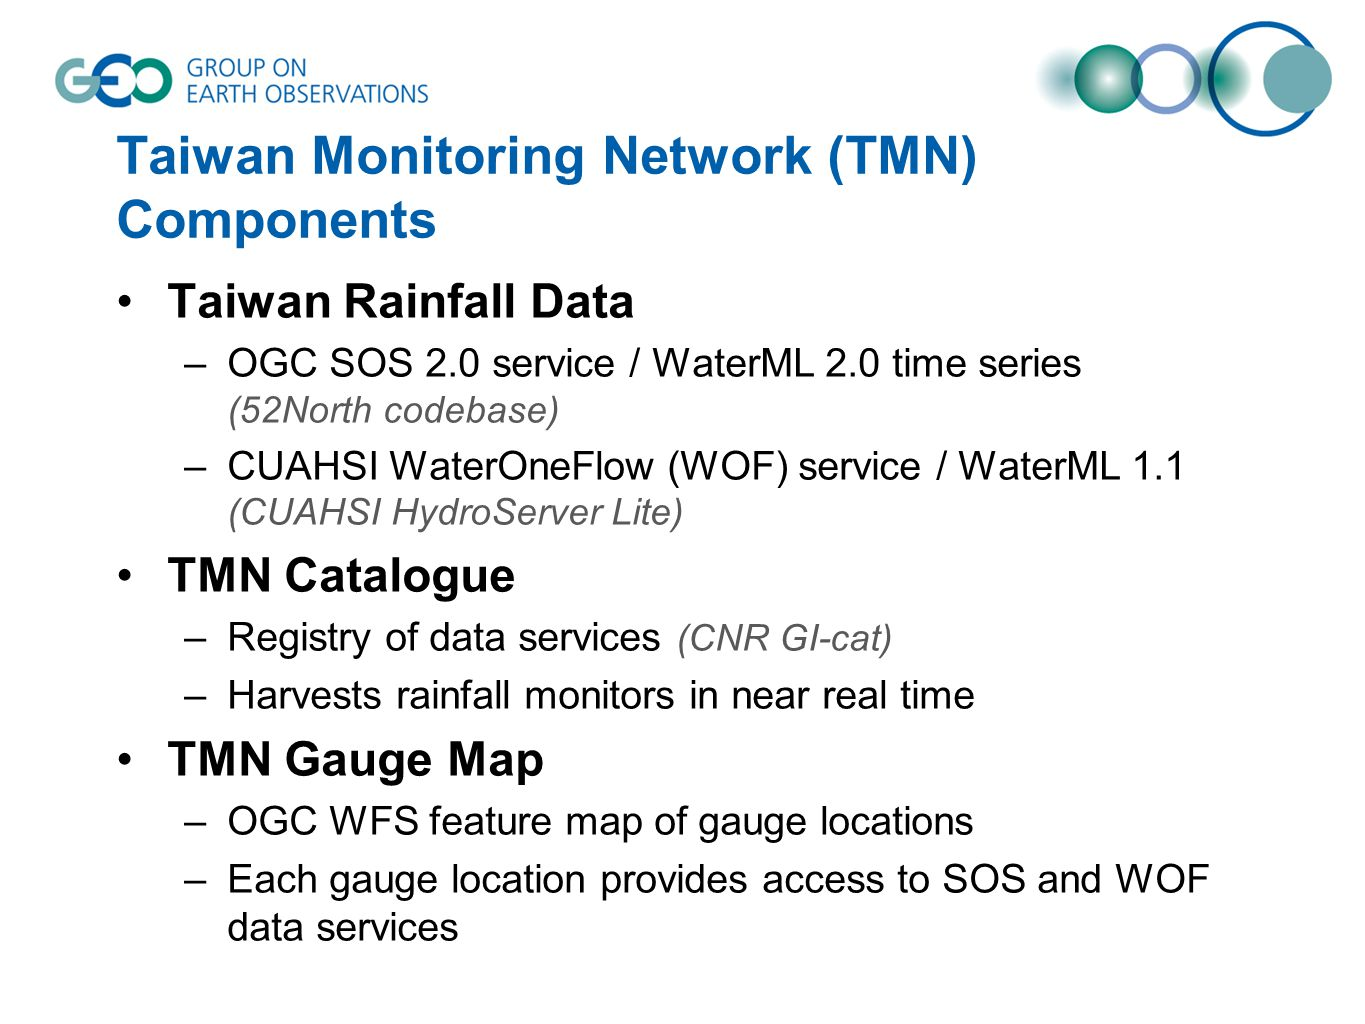 Taiwan Monitoring Network (TMN) Components Taiwan Rainfall Data –OGC SOS 2.0 service / WaterML 2.0 time series (52North codebase) –CUAHSI WaterOneFlow (WOF) service / WaterML 1.1 (CUAHSI HydroServer Lite) TMN Catalogue –Registry of data services (CNR GI-cat) –Harvests rainfall monitors in near real time TMN Gauge Map –OGC WFS feature map of gauge locations –Each gauge location provides access to SOS and WOF data services